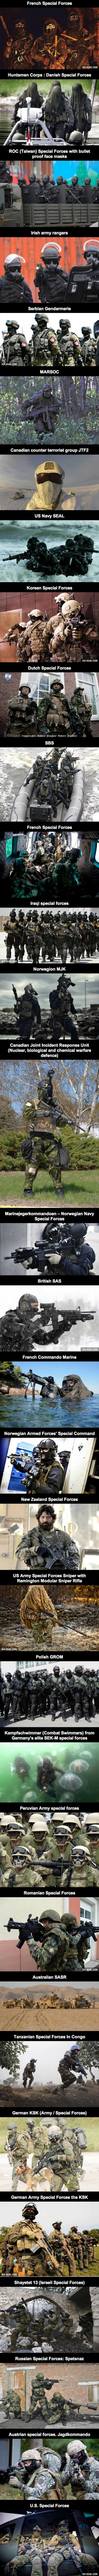 All Bad Asses... But I'd still pit a US Force against the rest any day of the week... (Just have your game faces hard with the SAS... Jus saying)